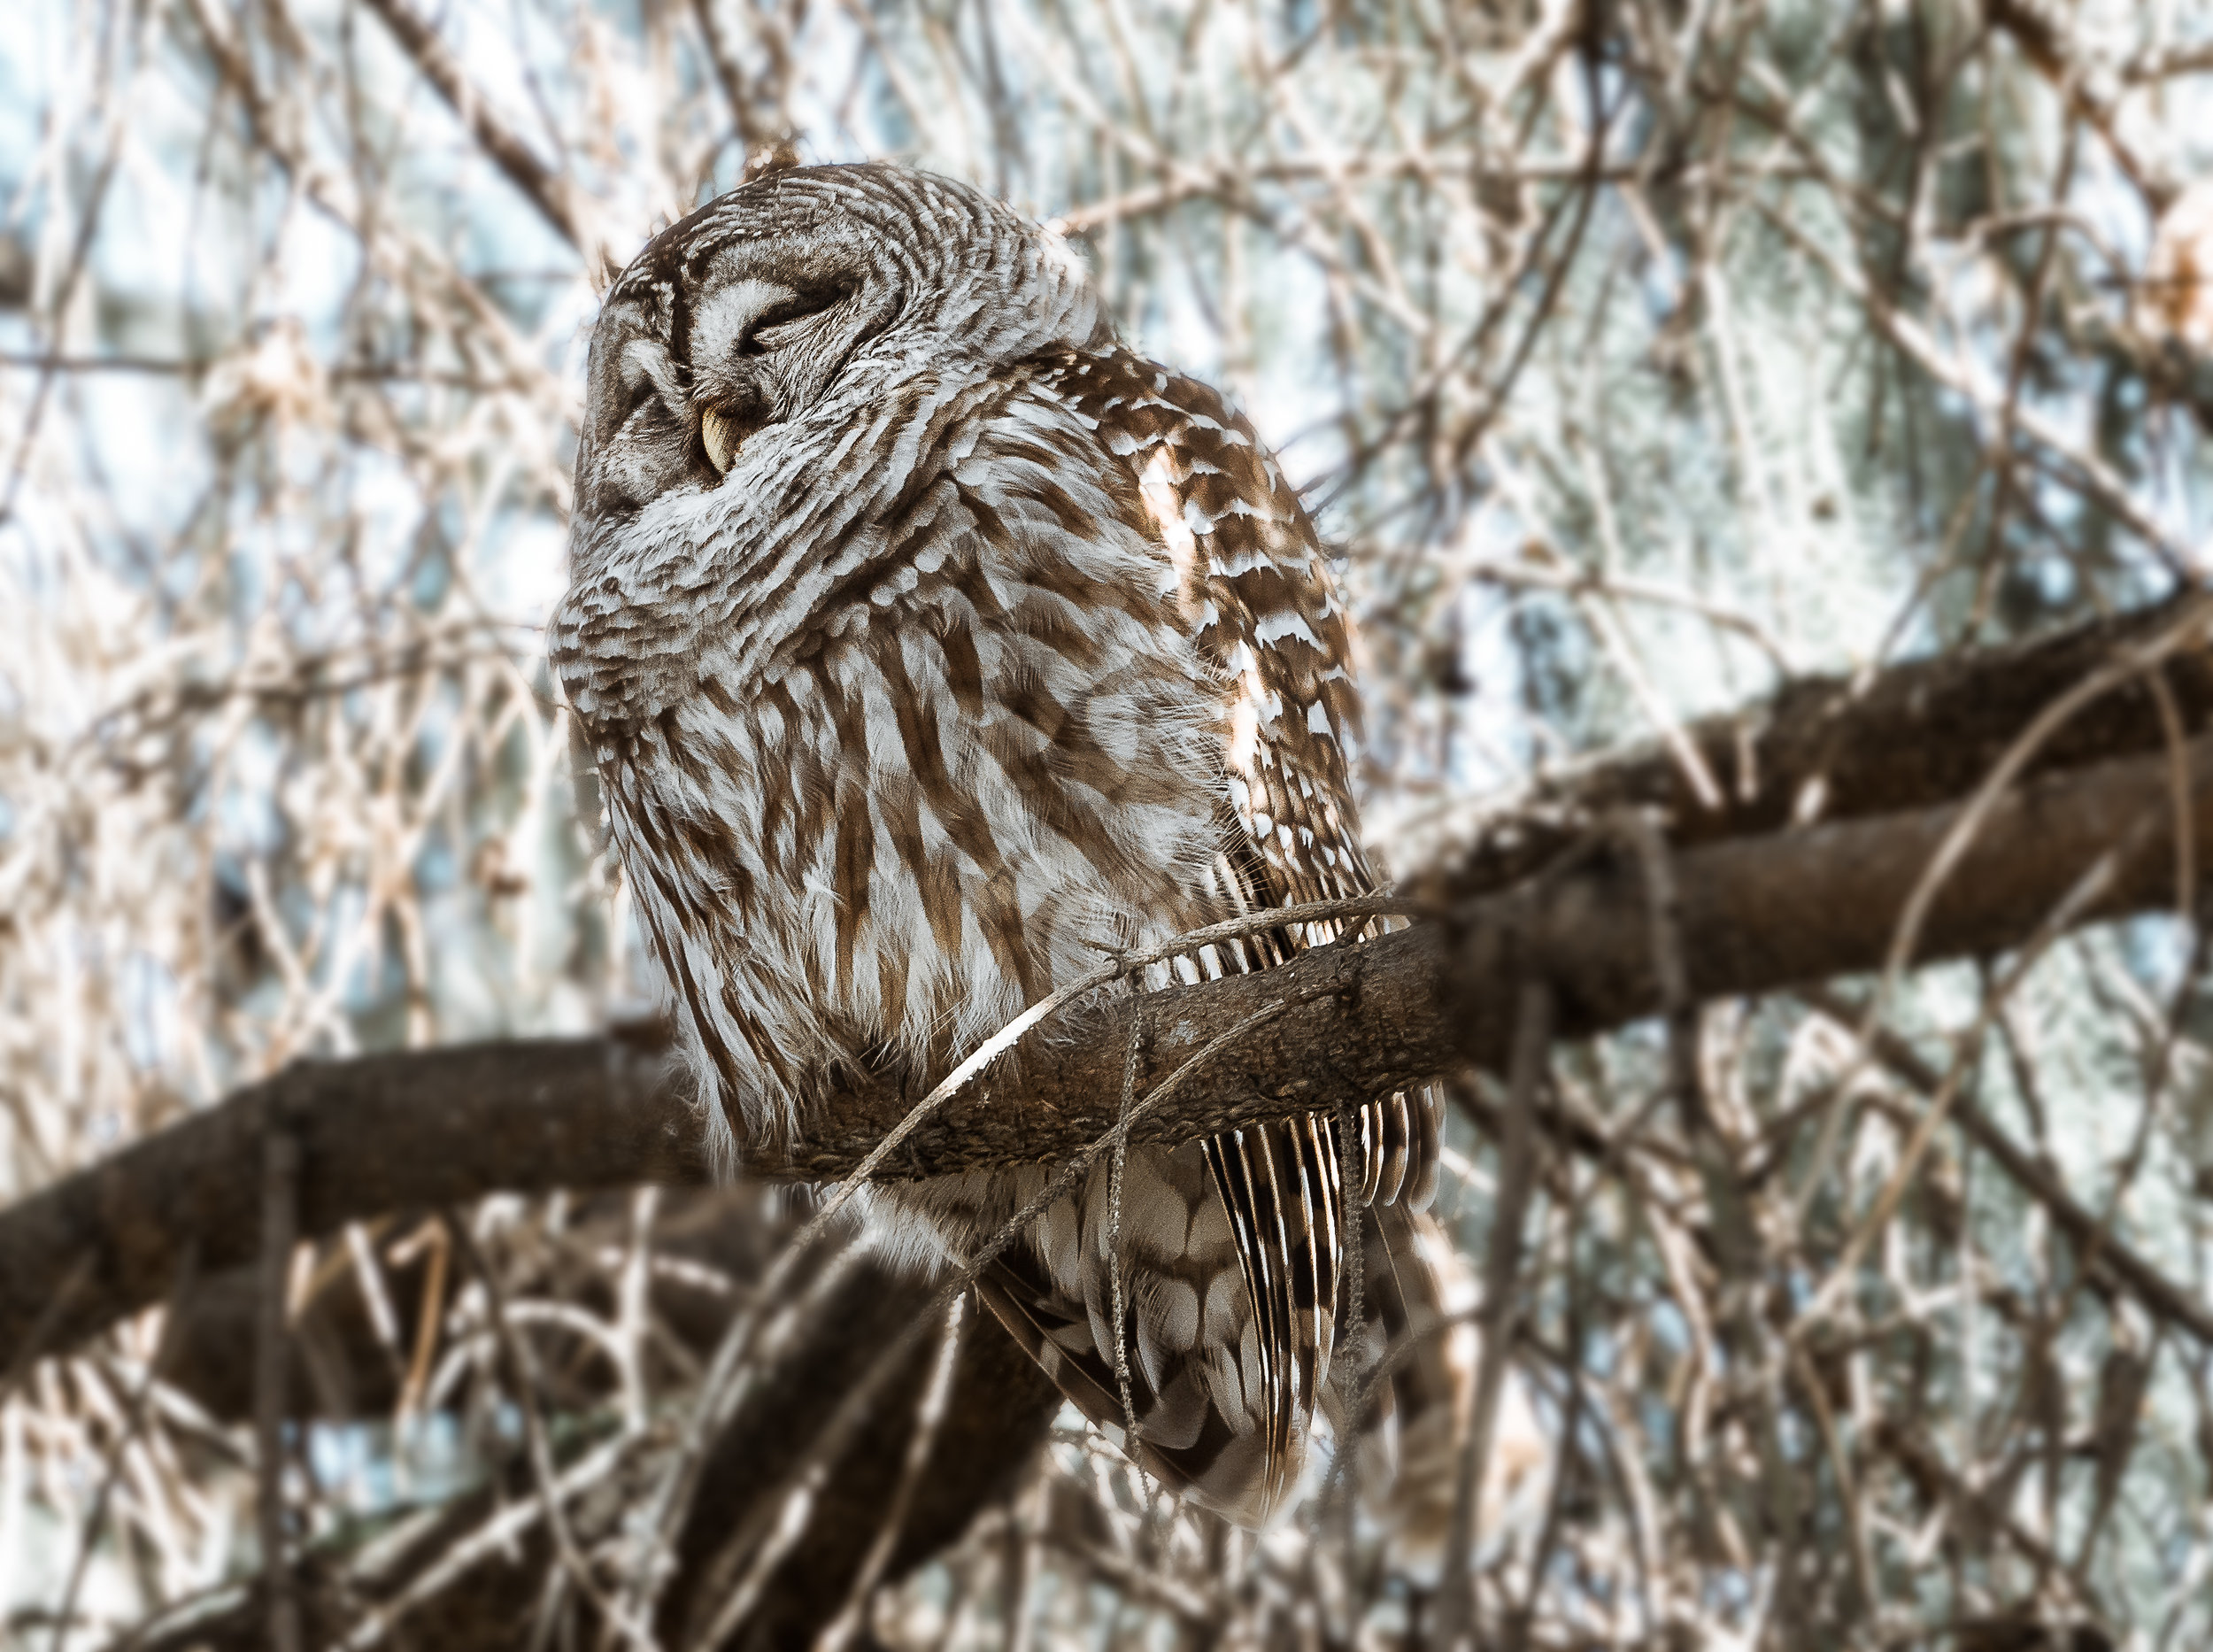 Fluffy the Barred Owl